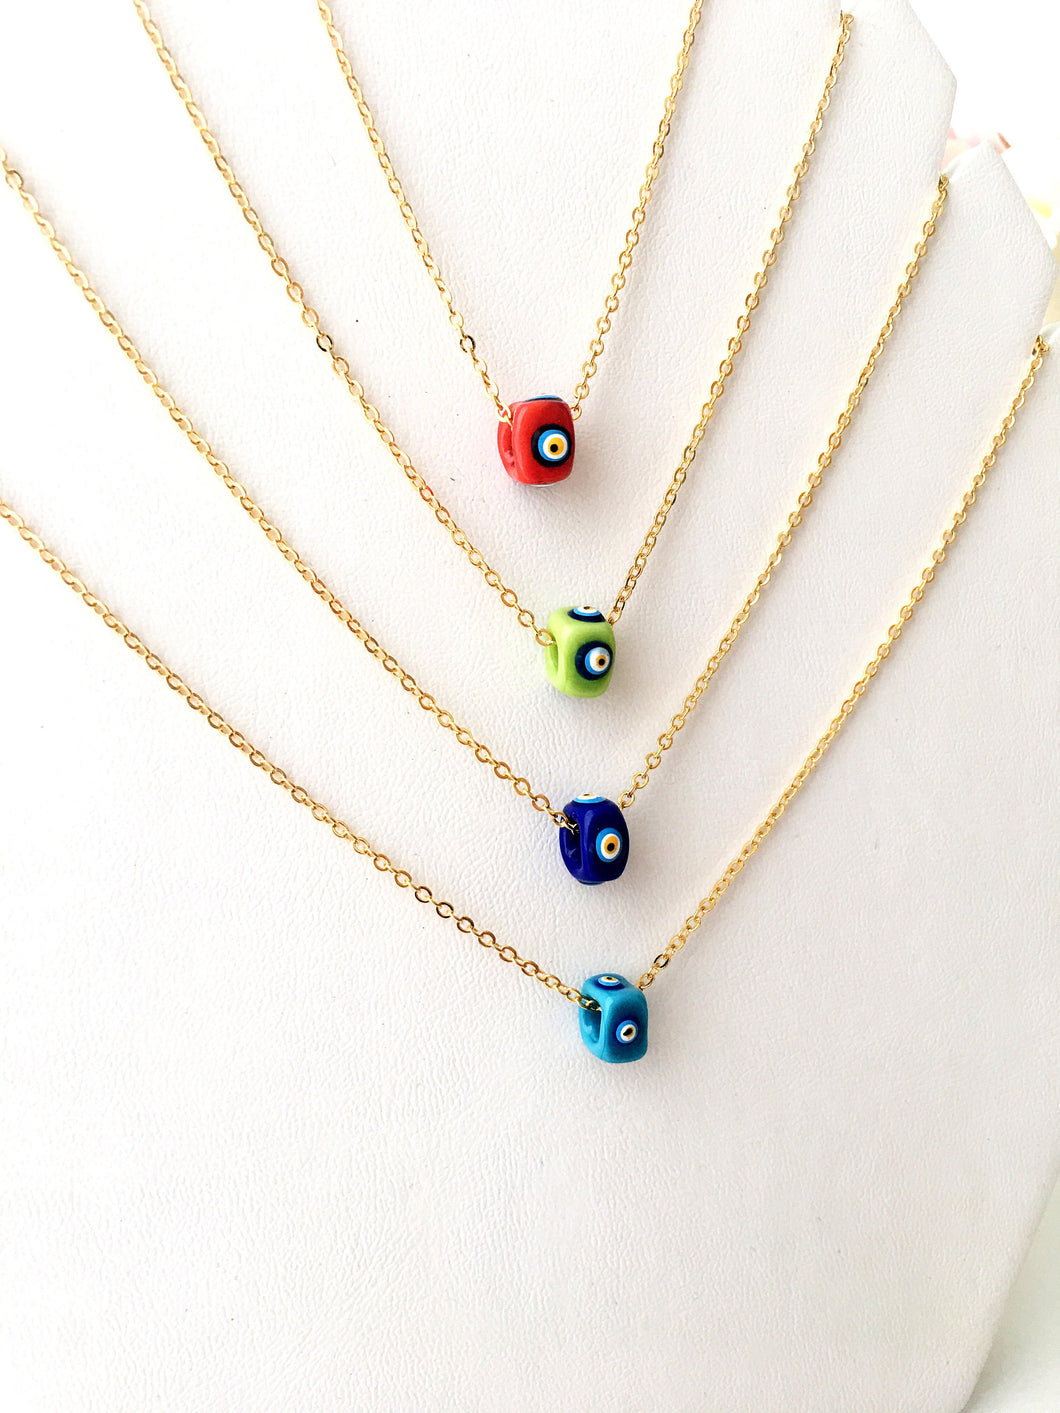 Evil eye necklace, murano glass necklace, blue evil eye beads, murano glass evil eye beads - Evileyefavor